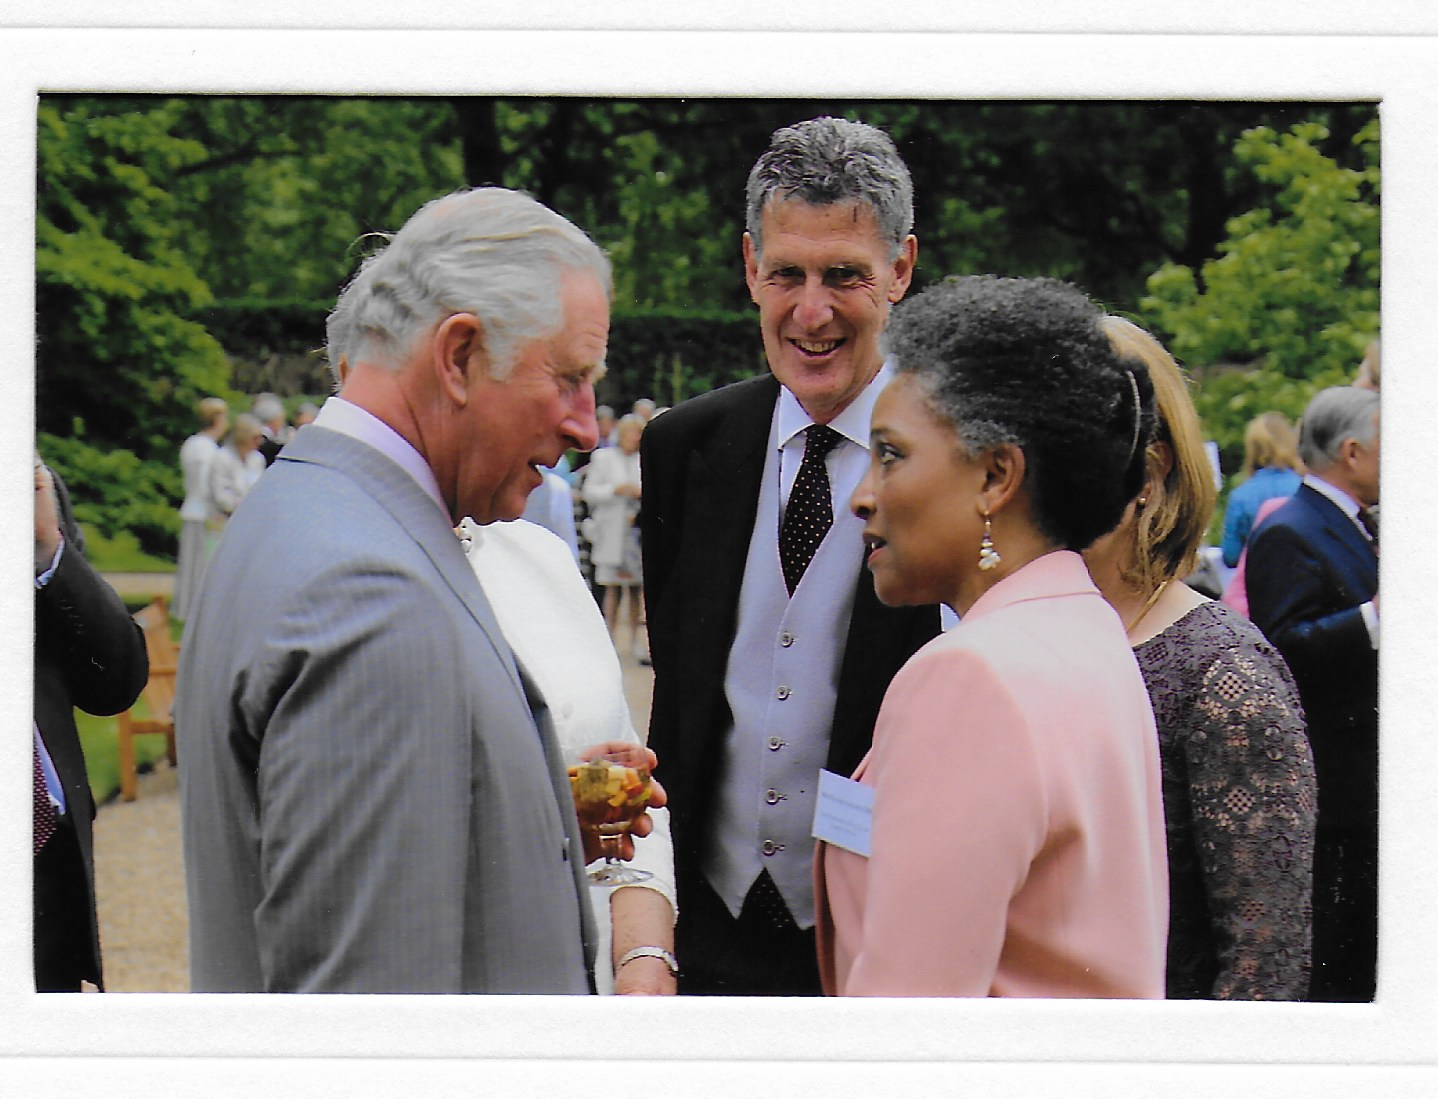 A photograph showing Golding and the Prince of Wales in conversation.